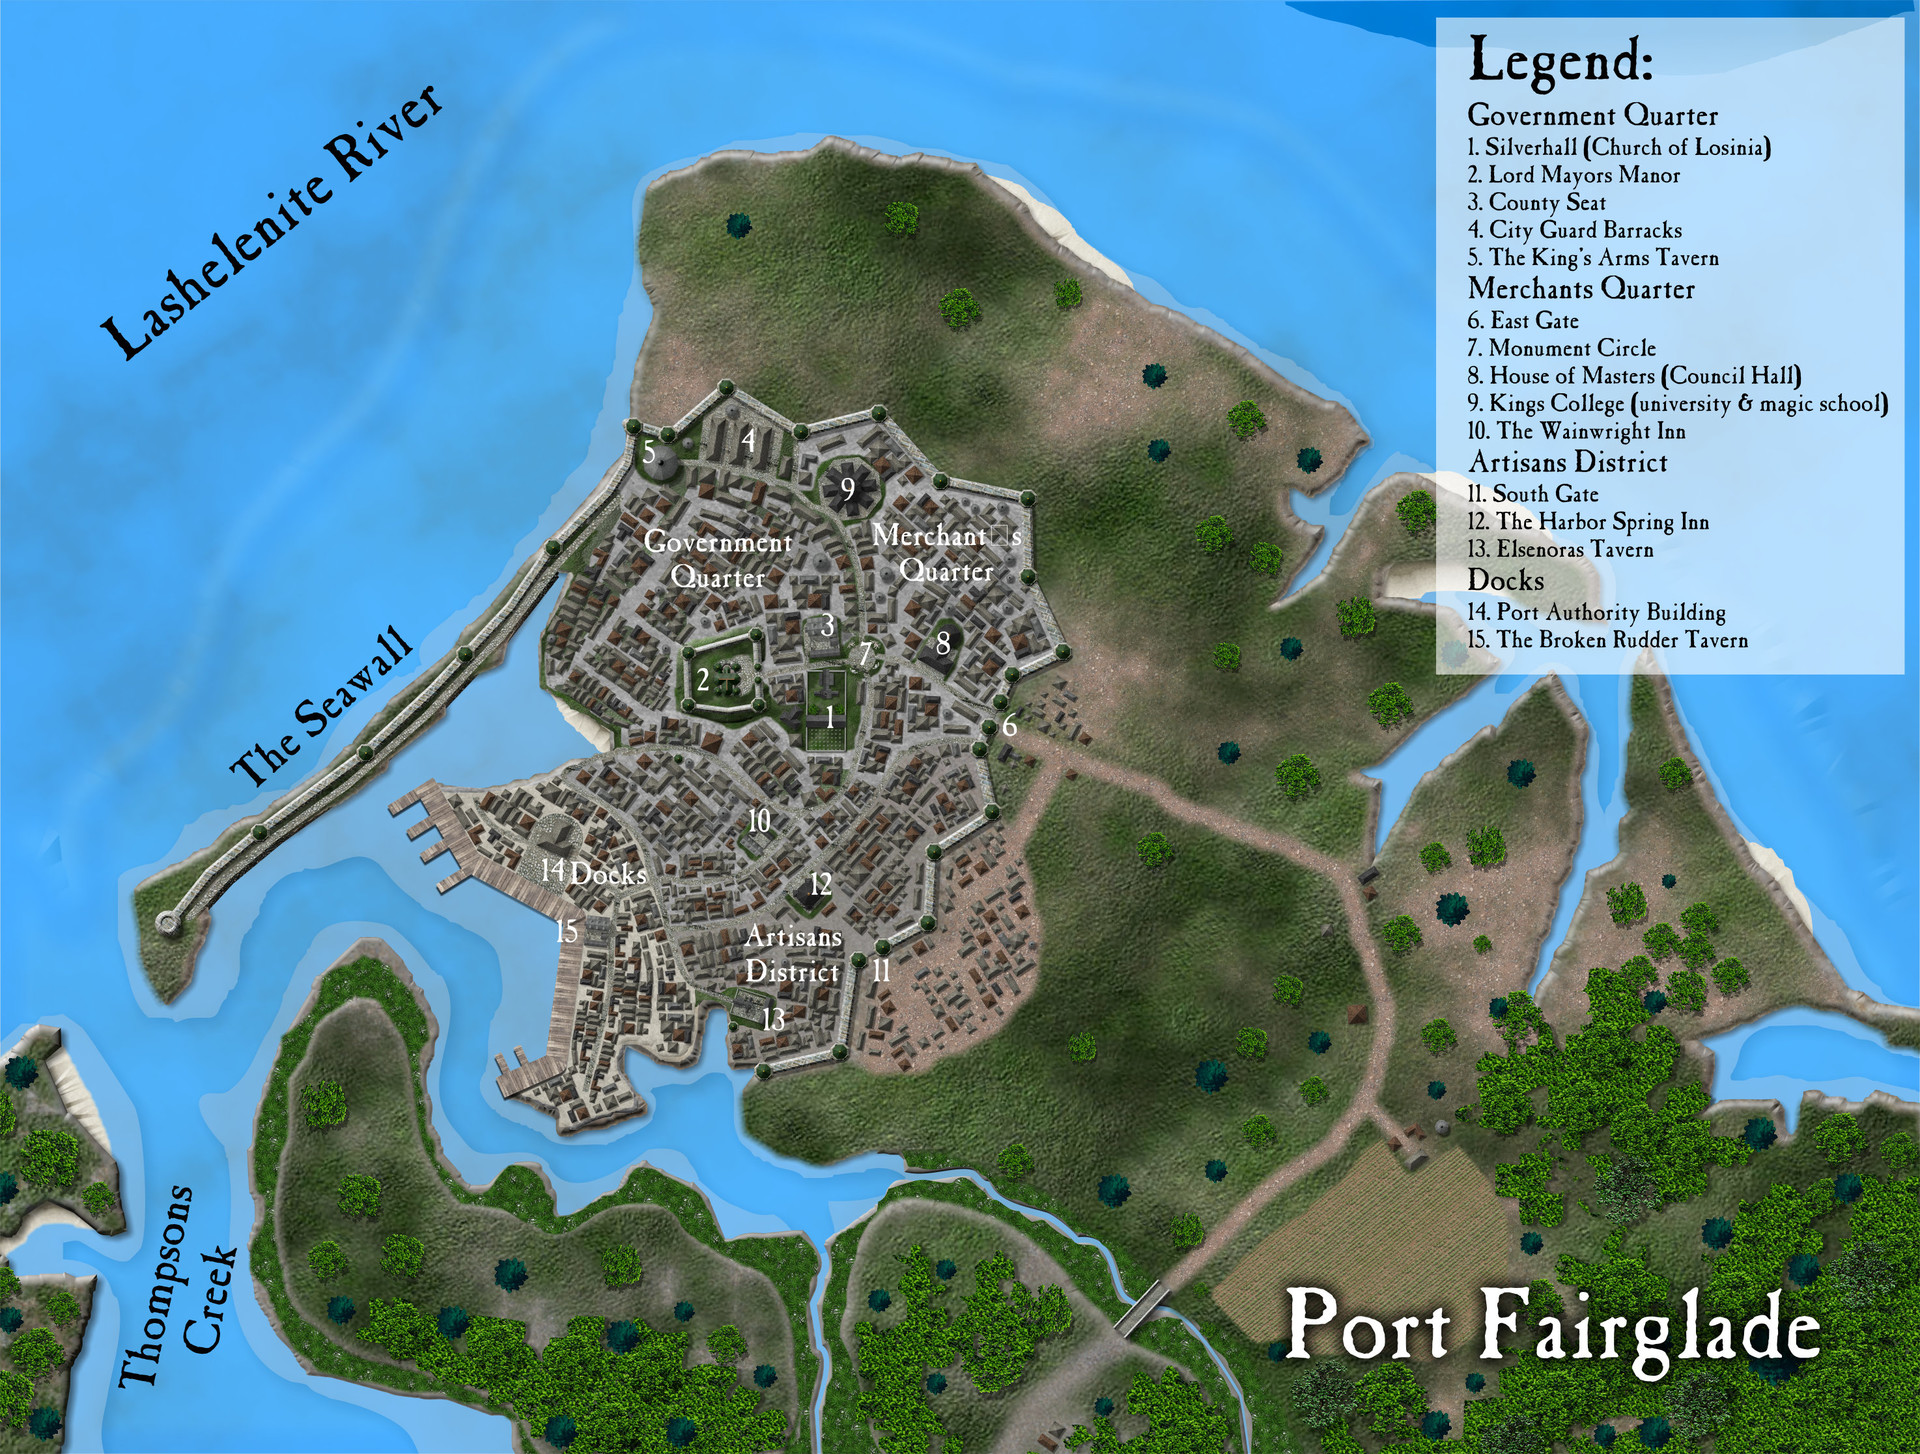 ArtStation - Assorted City and Town Maps, Michael Tumey